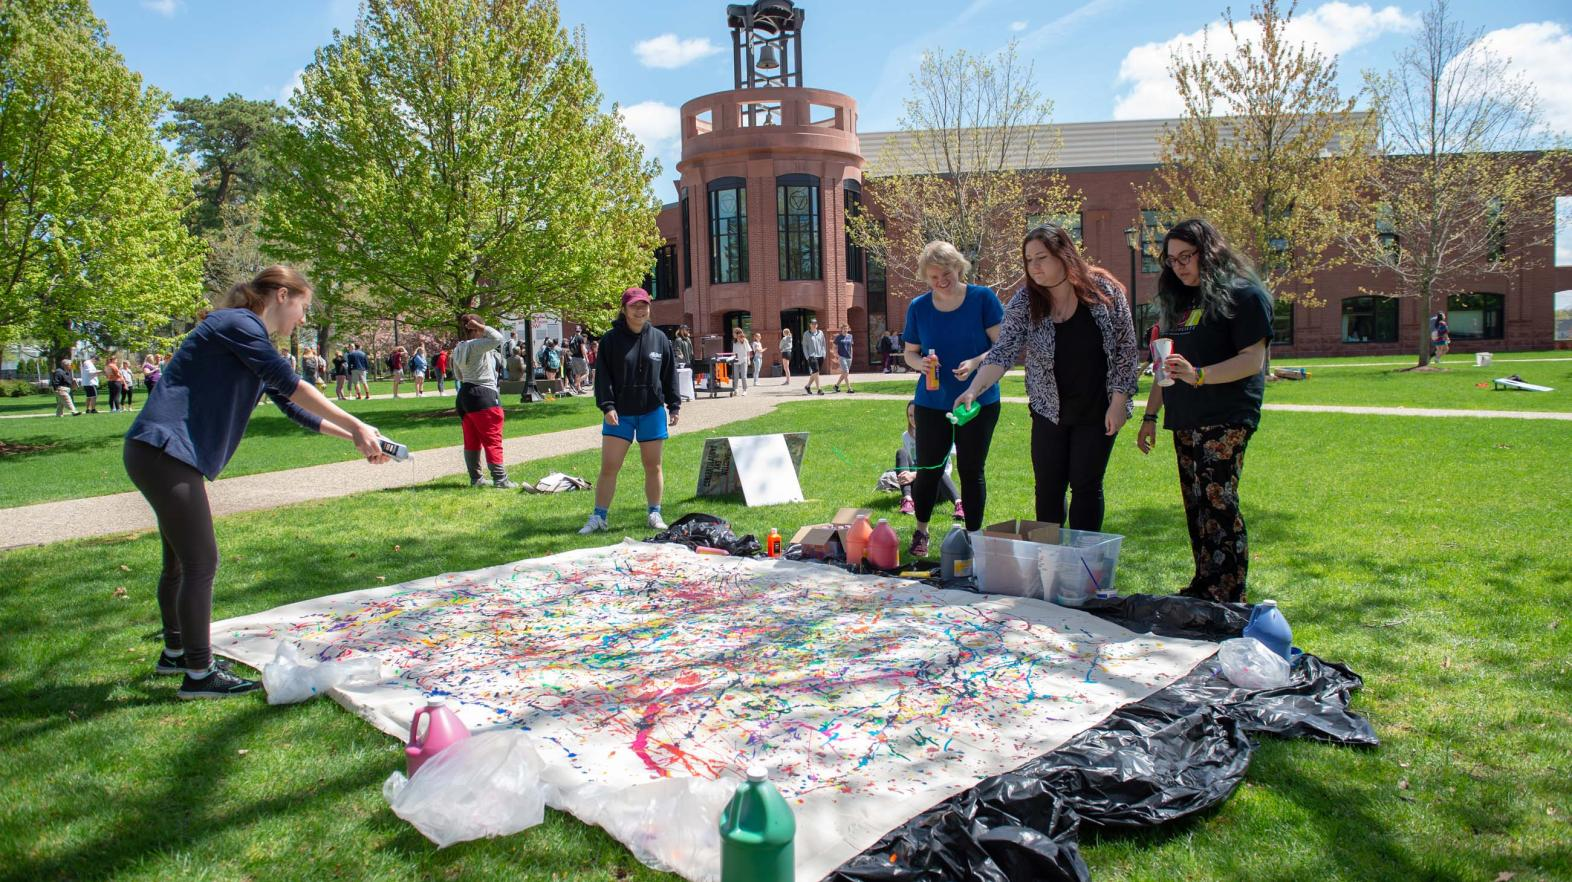 Students throw paint on a tarp on the quad.